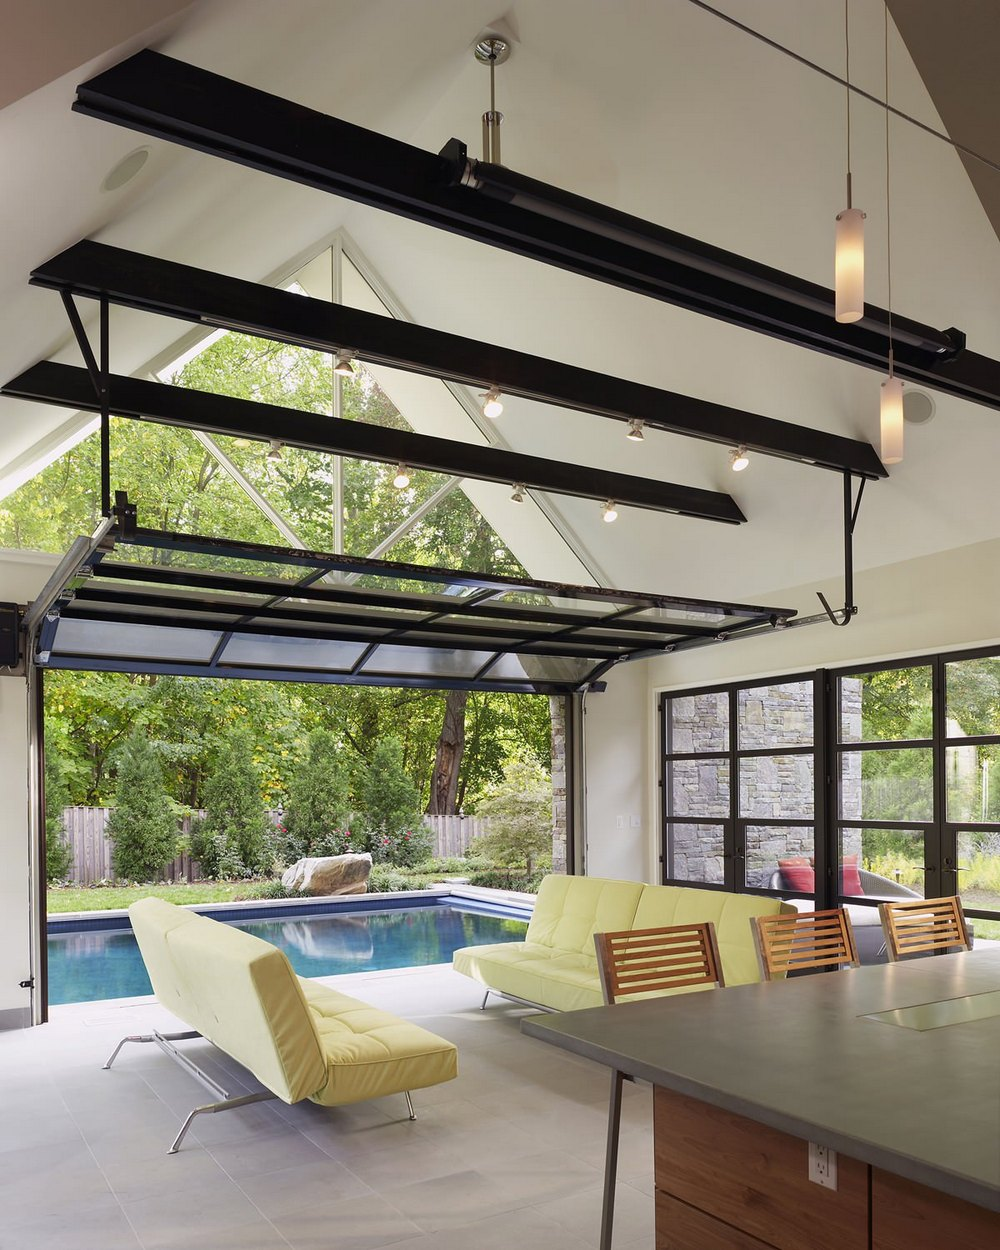 pool house with garden simple lifestyle (6)